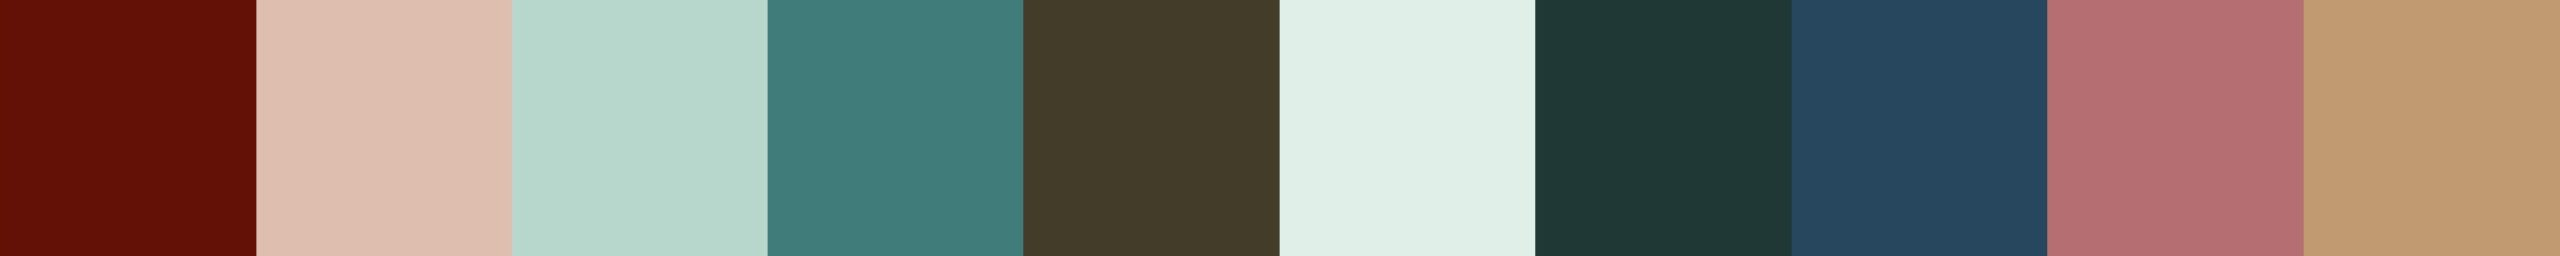 507 Paraboza Color Palette